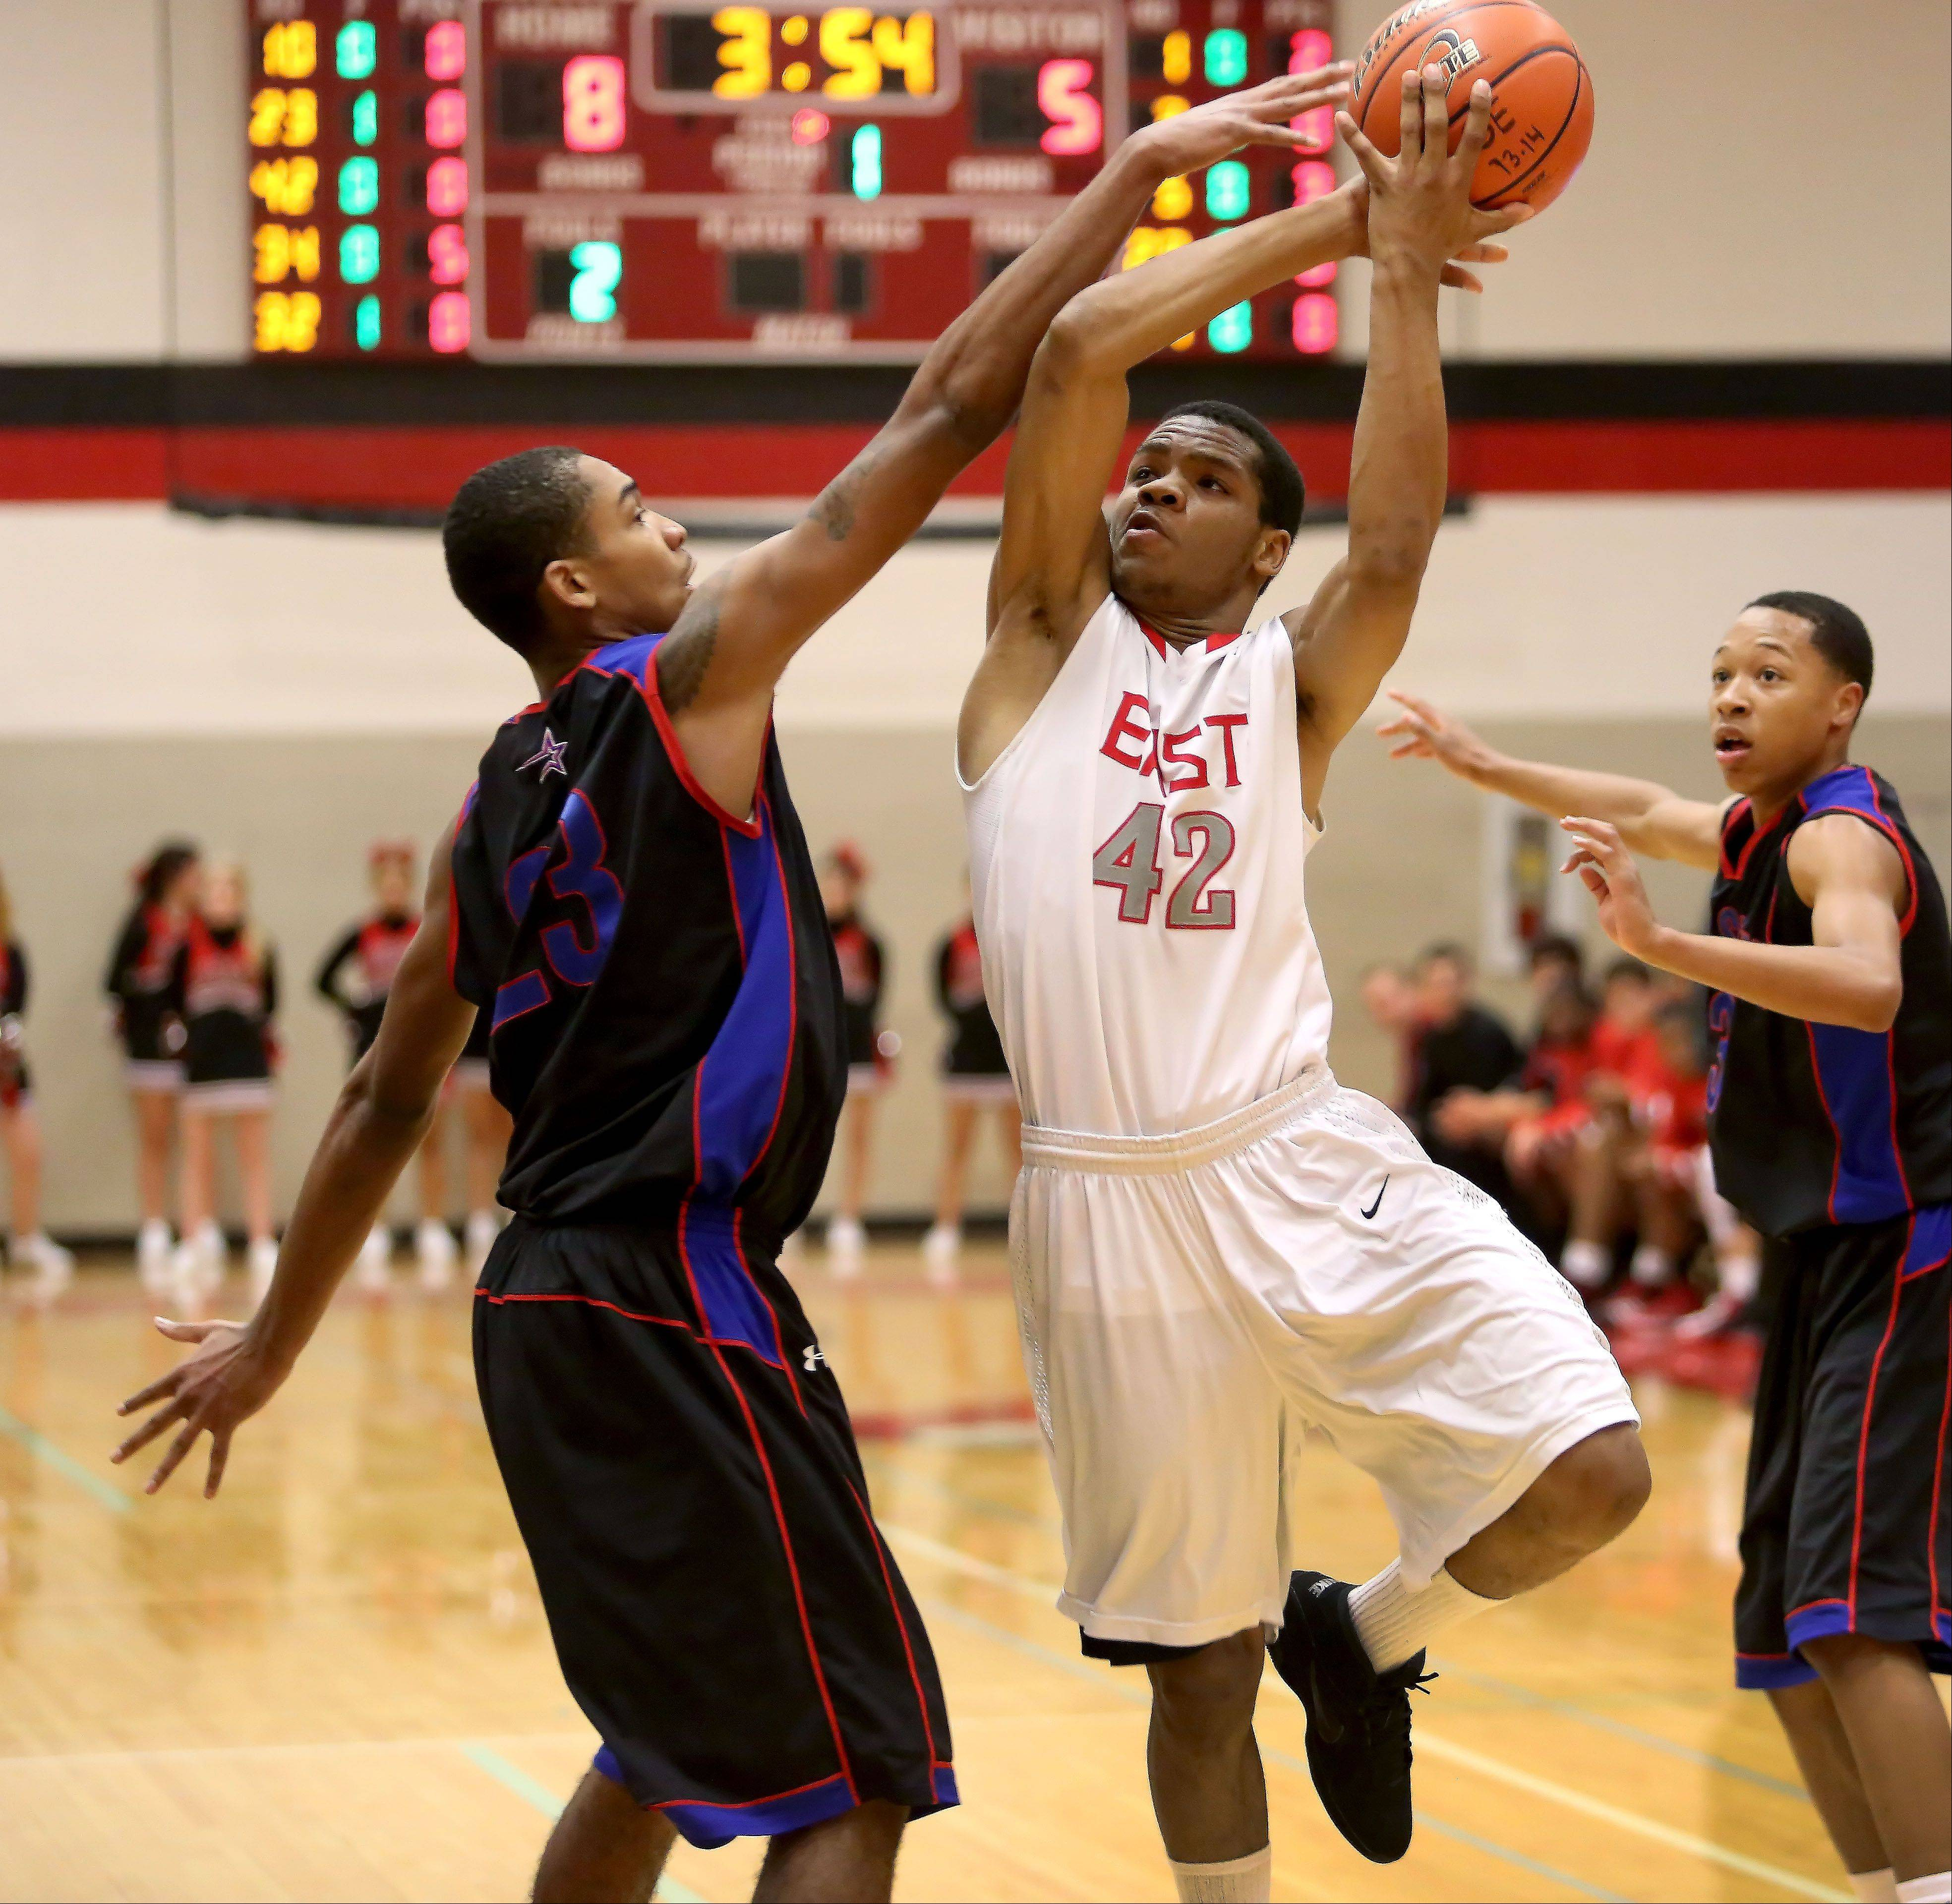 Hall scores 30, but Glenbard East loses at buzzer